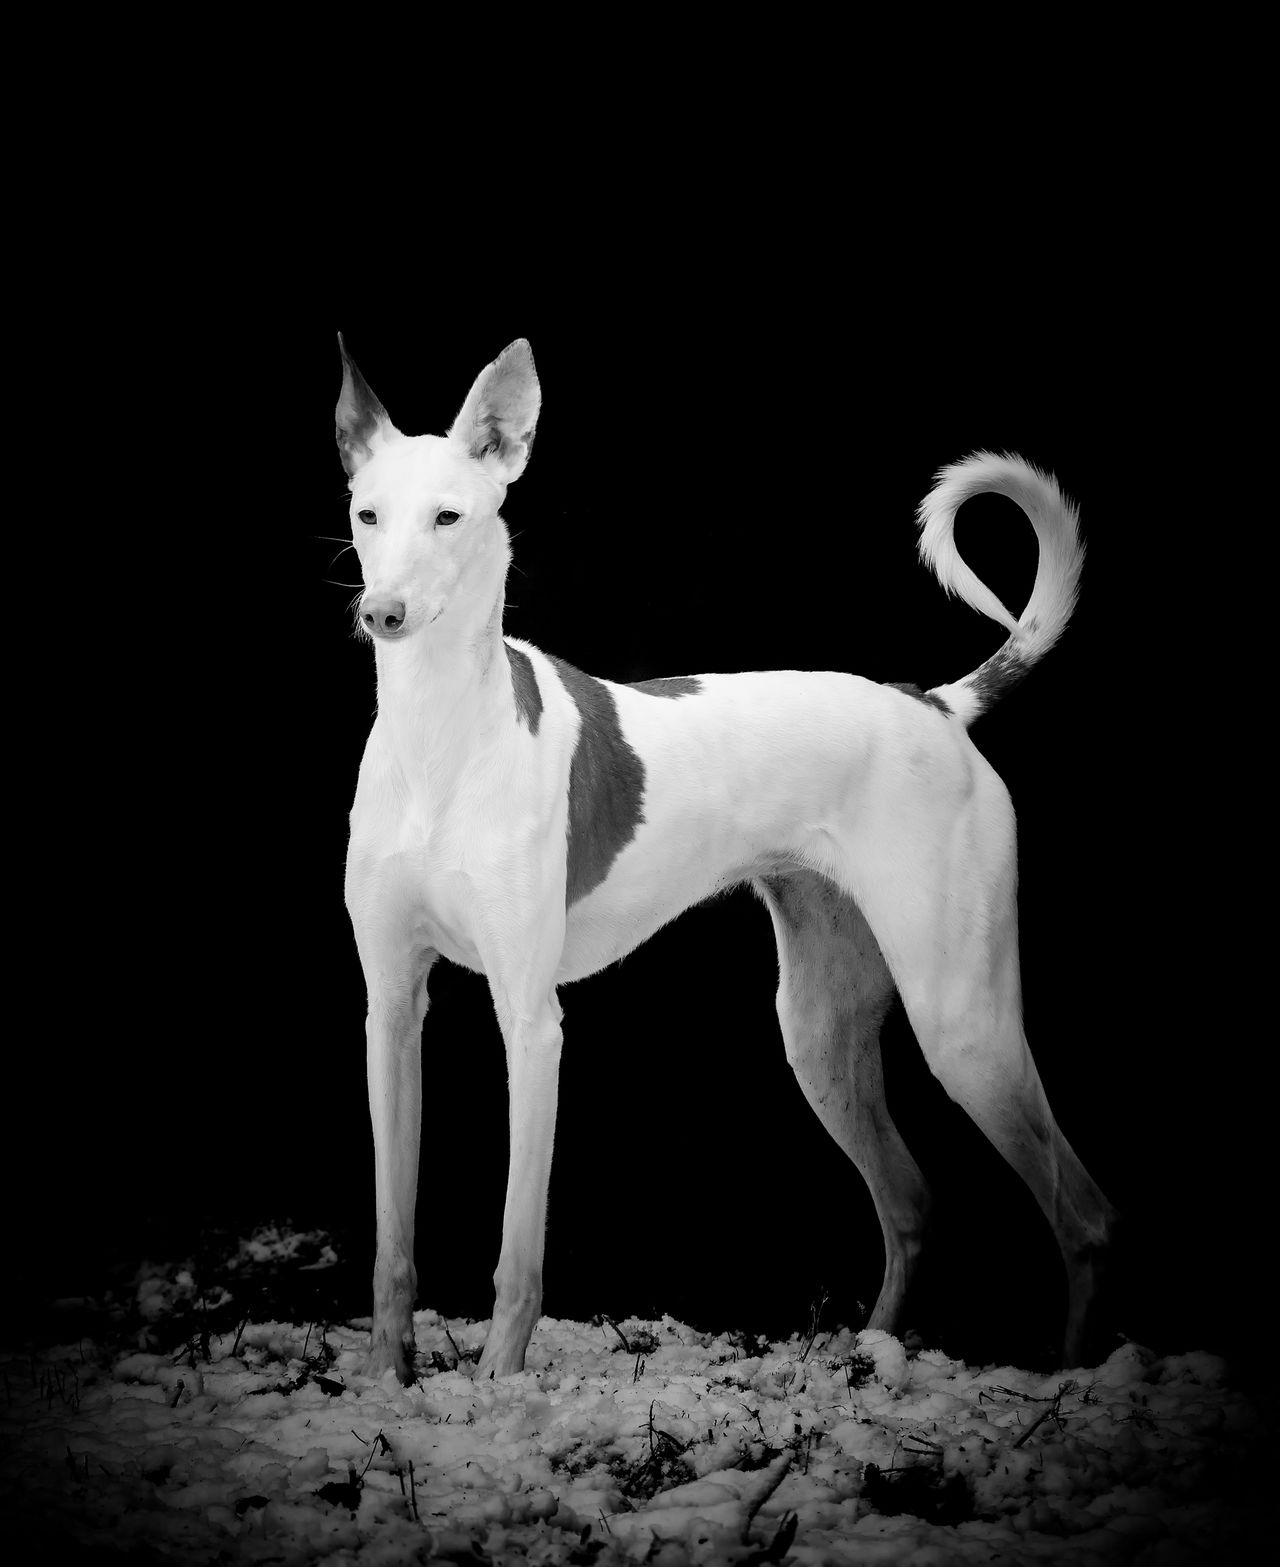 Animal Themes Black Background Dog Full Length Ibizan Hound Mammal Night No People One Animal Outdoors Pets Podenco Ibicenco Studio Shot